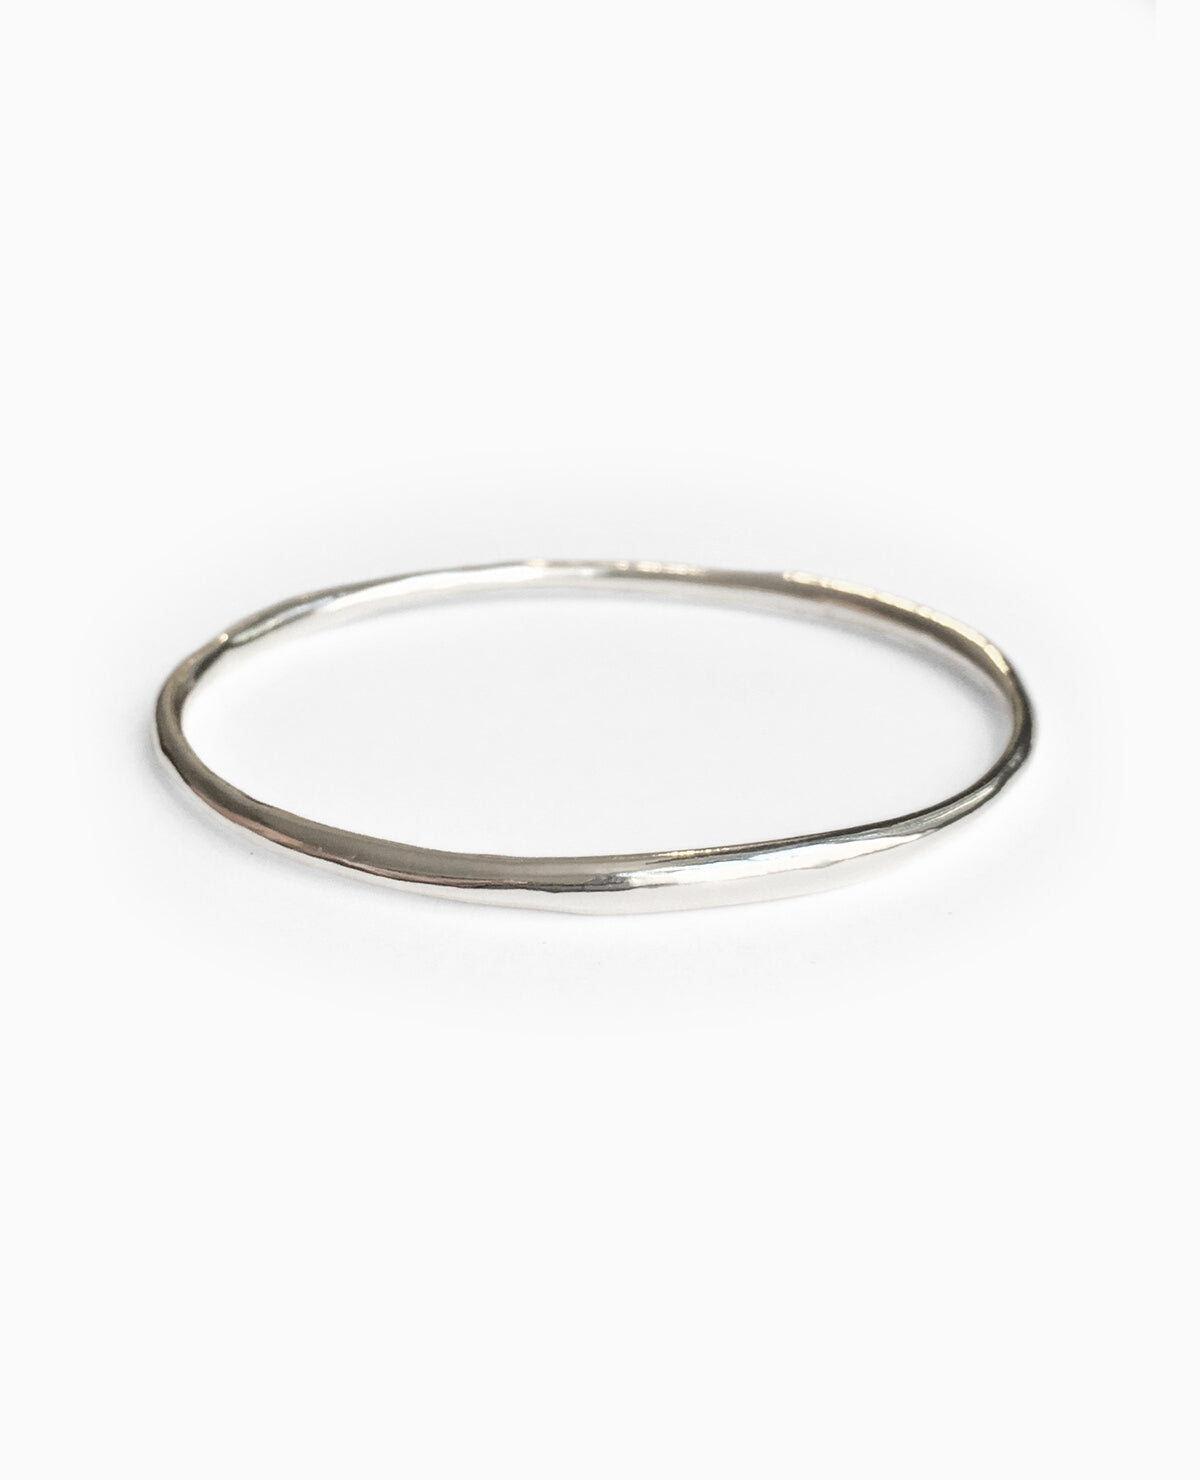 SUAI Form Bangle / Silver